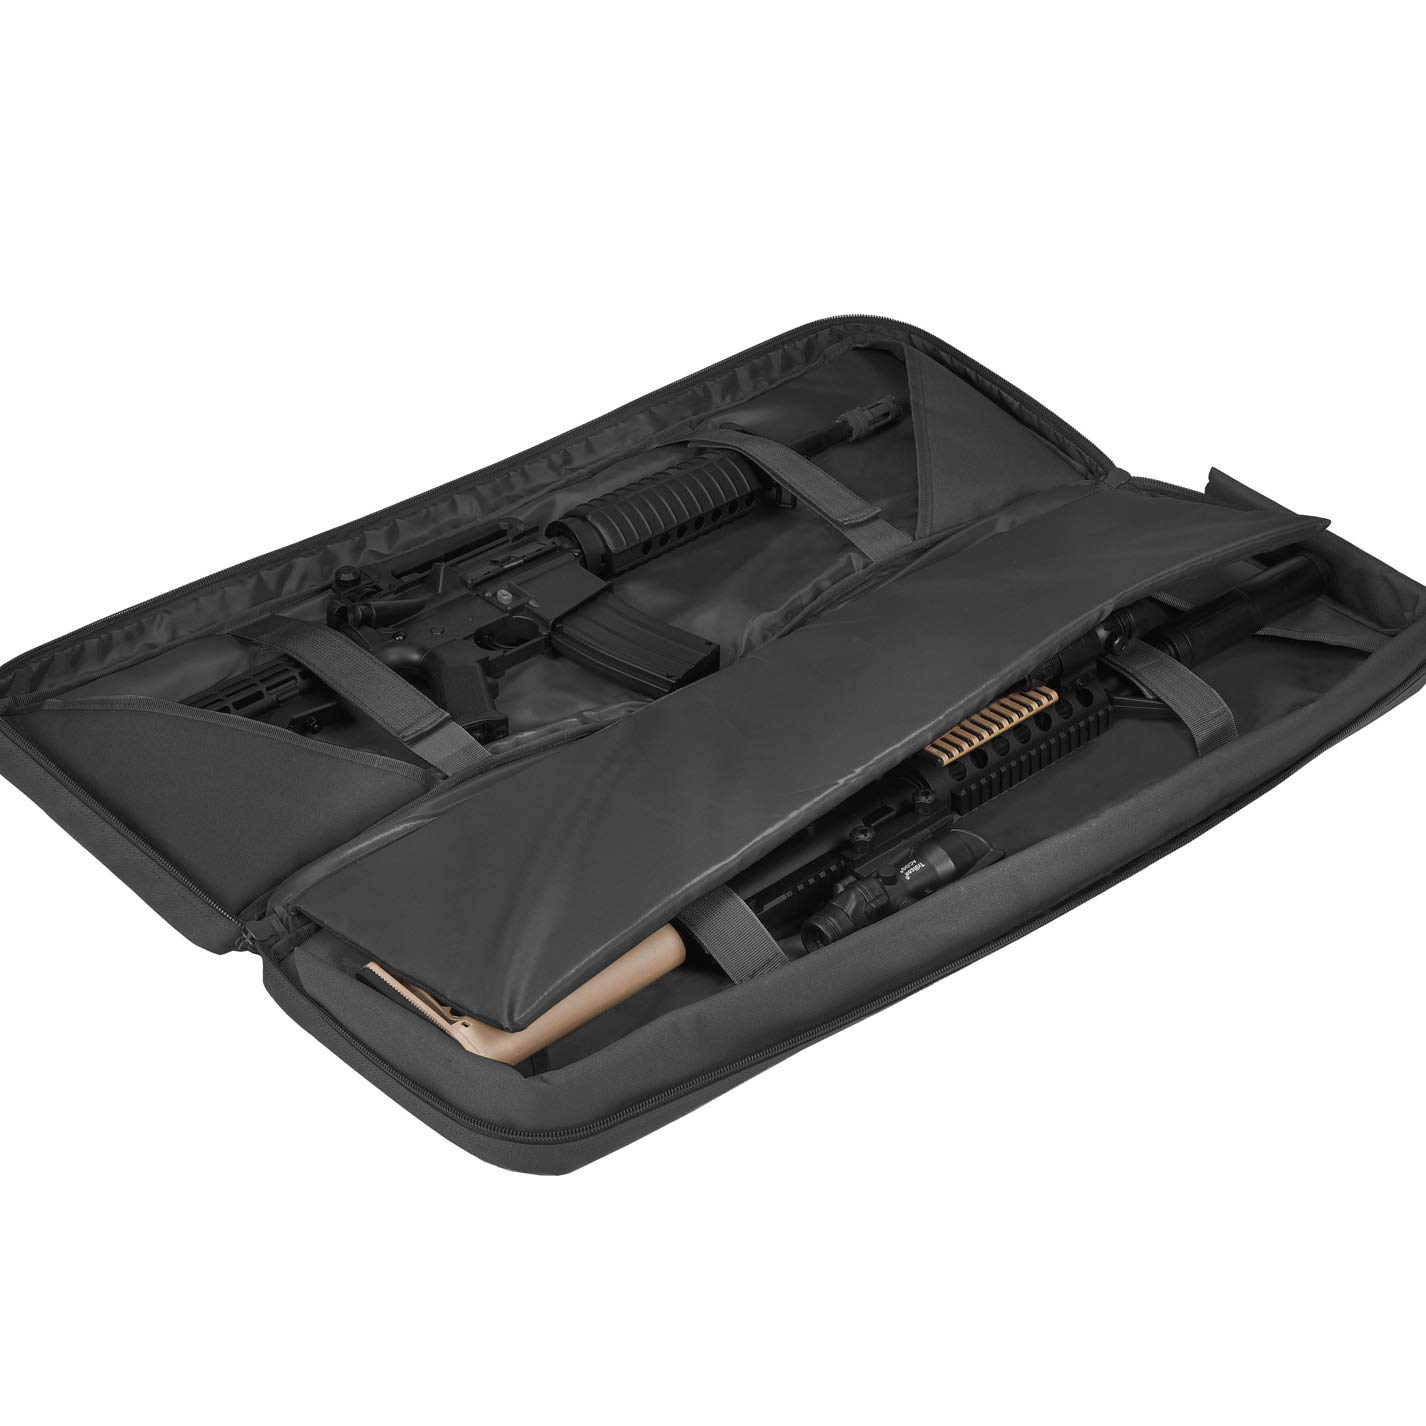 BOW-TAC Double Long Rifle Gun Case Bag Tactical Rifle Backpack Pistol Soft Firearm Transportation Carbine Case - Lockable Compartment, Available Length in 36'' 42'' 46'' by BOW-TAC (Image #2)